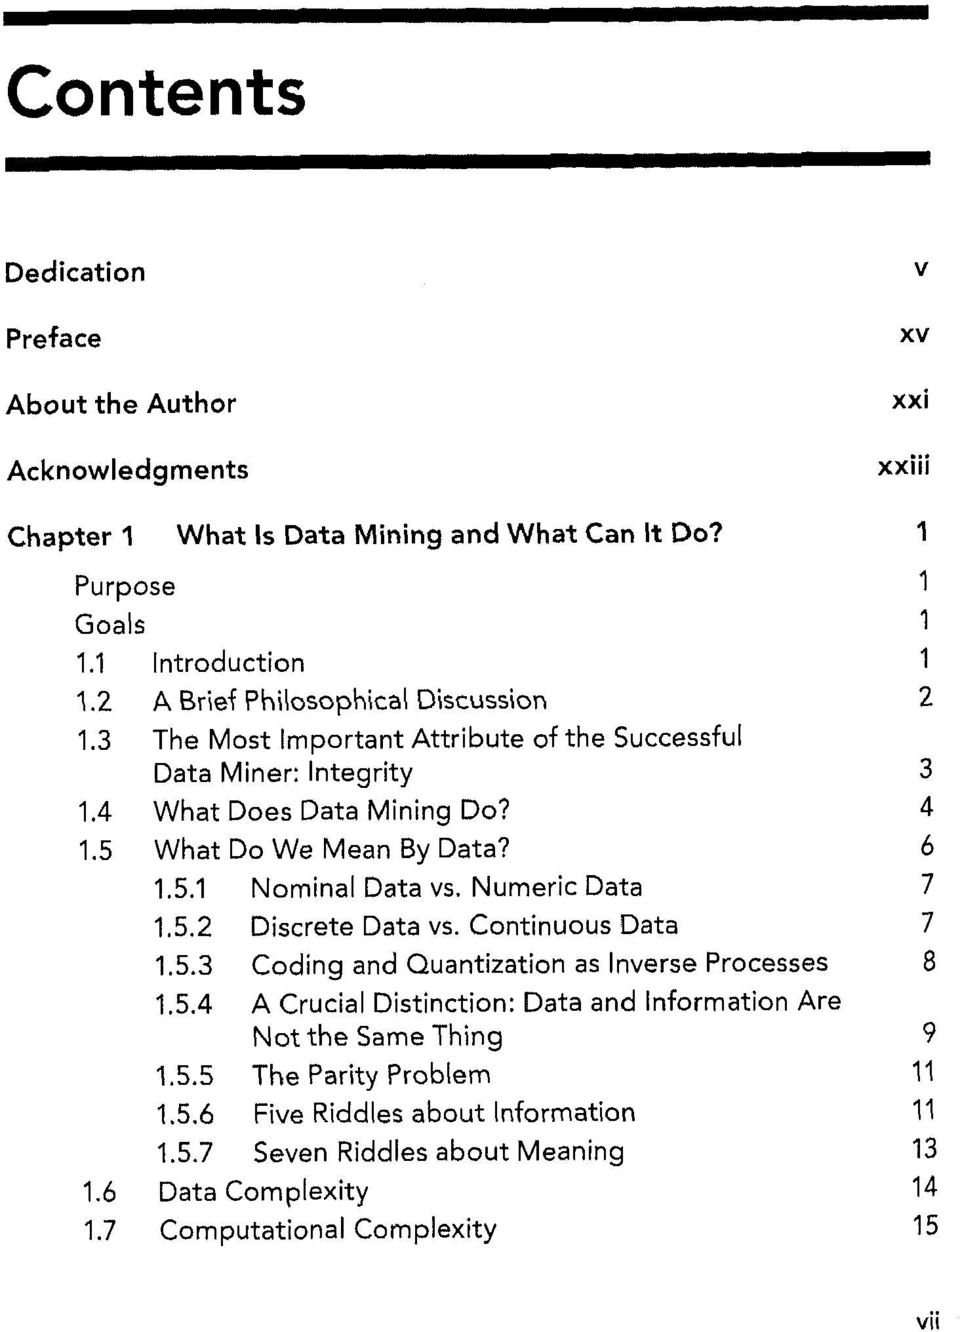 5.1 Nominal Data vs. Numeric Data 7 1.5.2 Discrete Data vs. Continuous Data 7 1.5.3 Coding and Quantization as Inverse Processes 8 1.5.4 A Crucial Distinction: Data and Information Are Not the Same Thing 9 1.